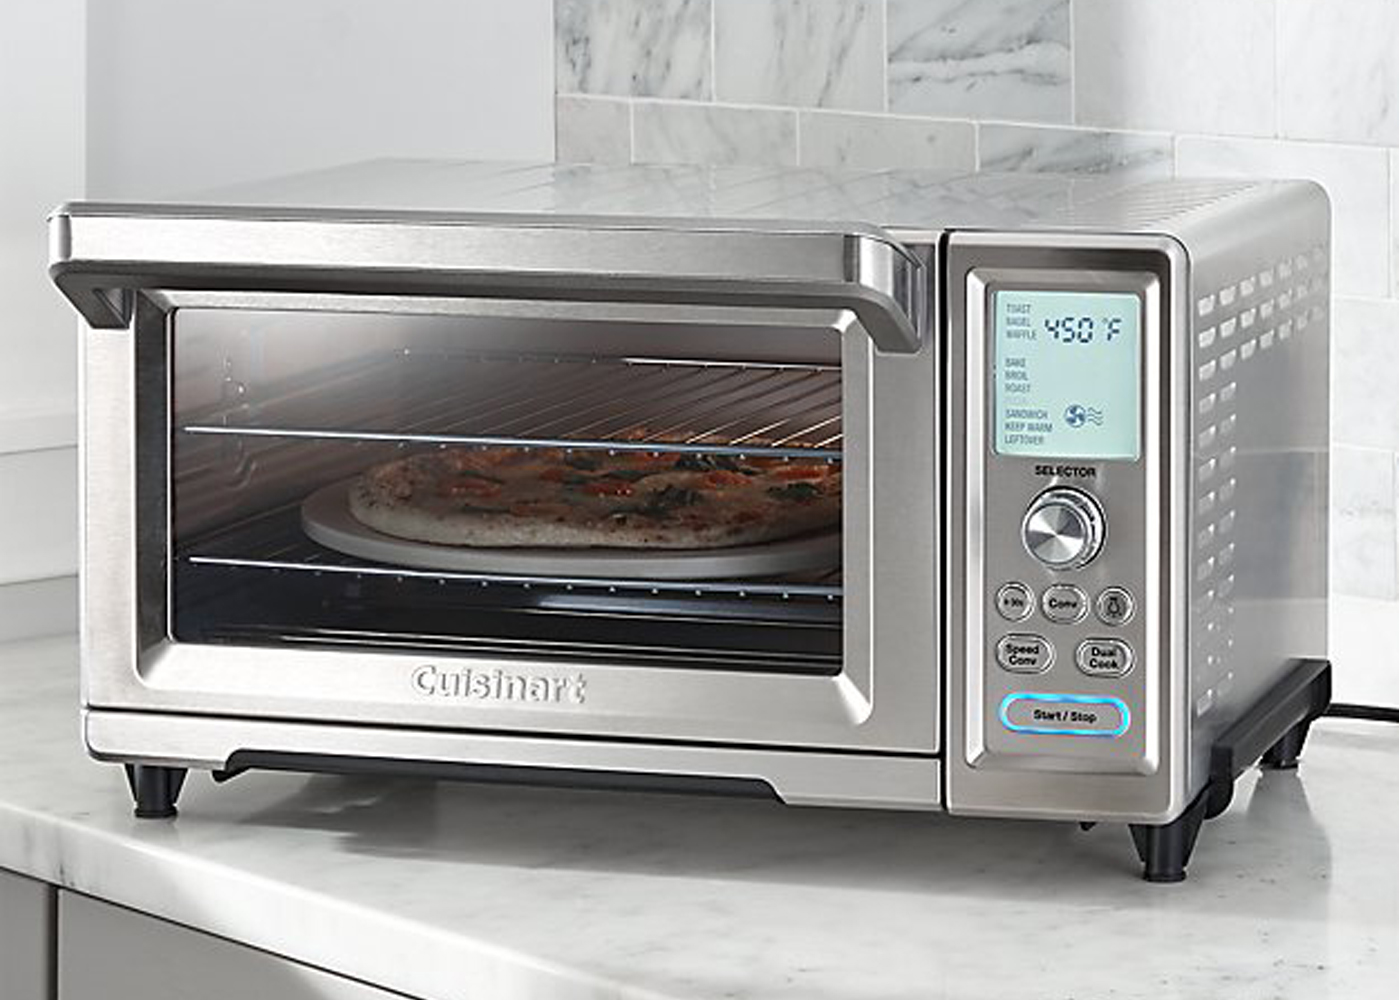 CUISINART Toaster Ovens  Strategy | Product Design